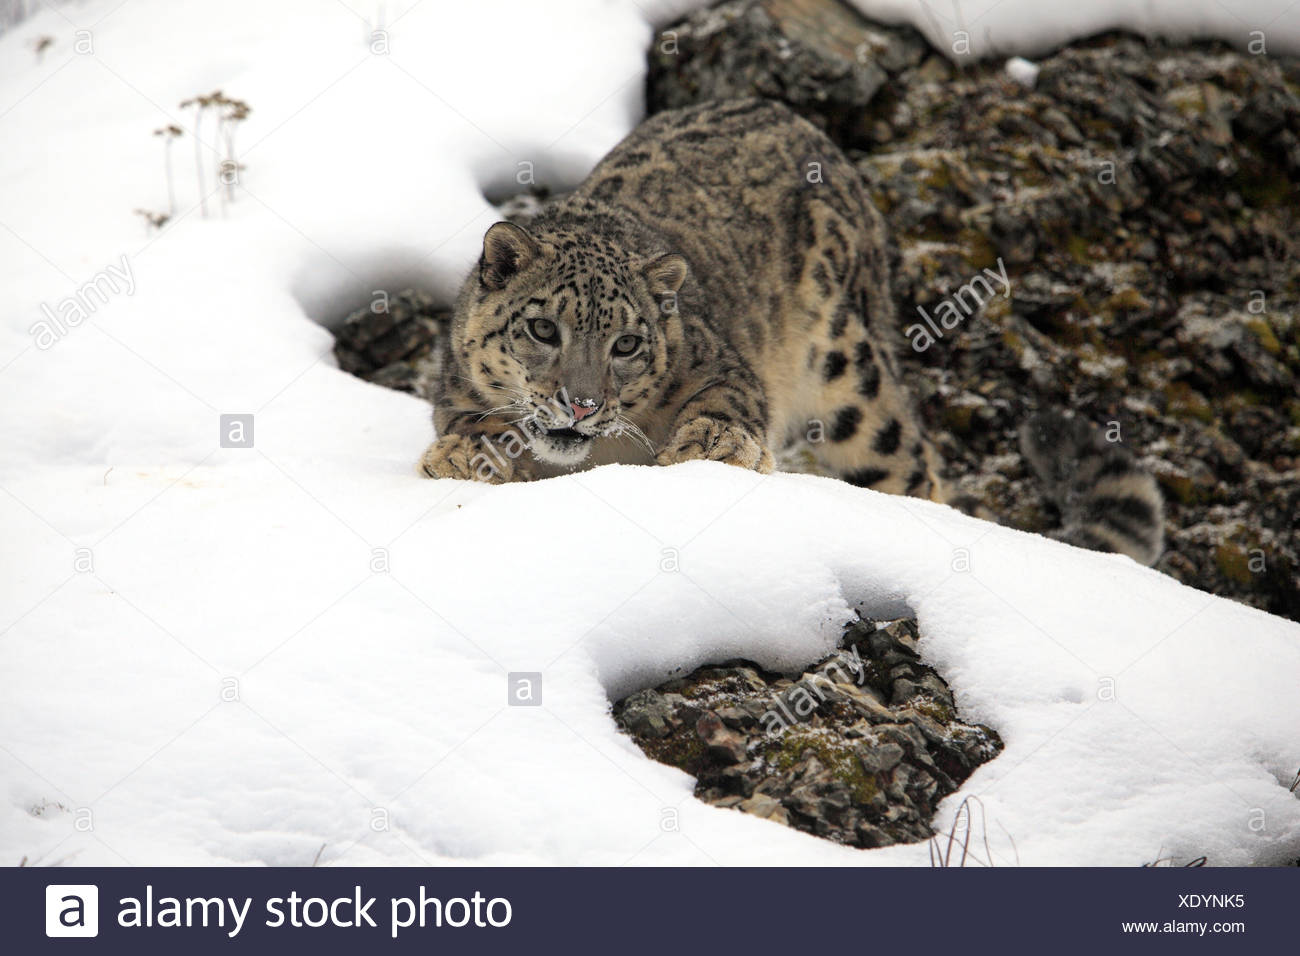 Snow Leopard (Panthera uncia) adult, crouching in snow, winter (captive) - Stock Image